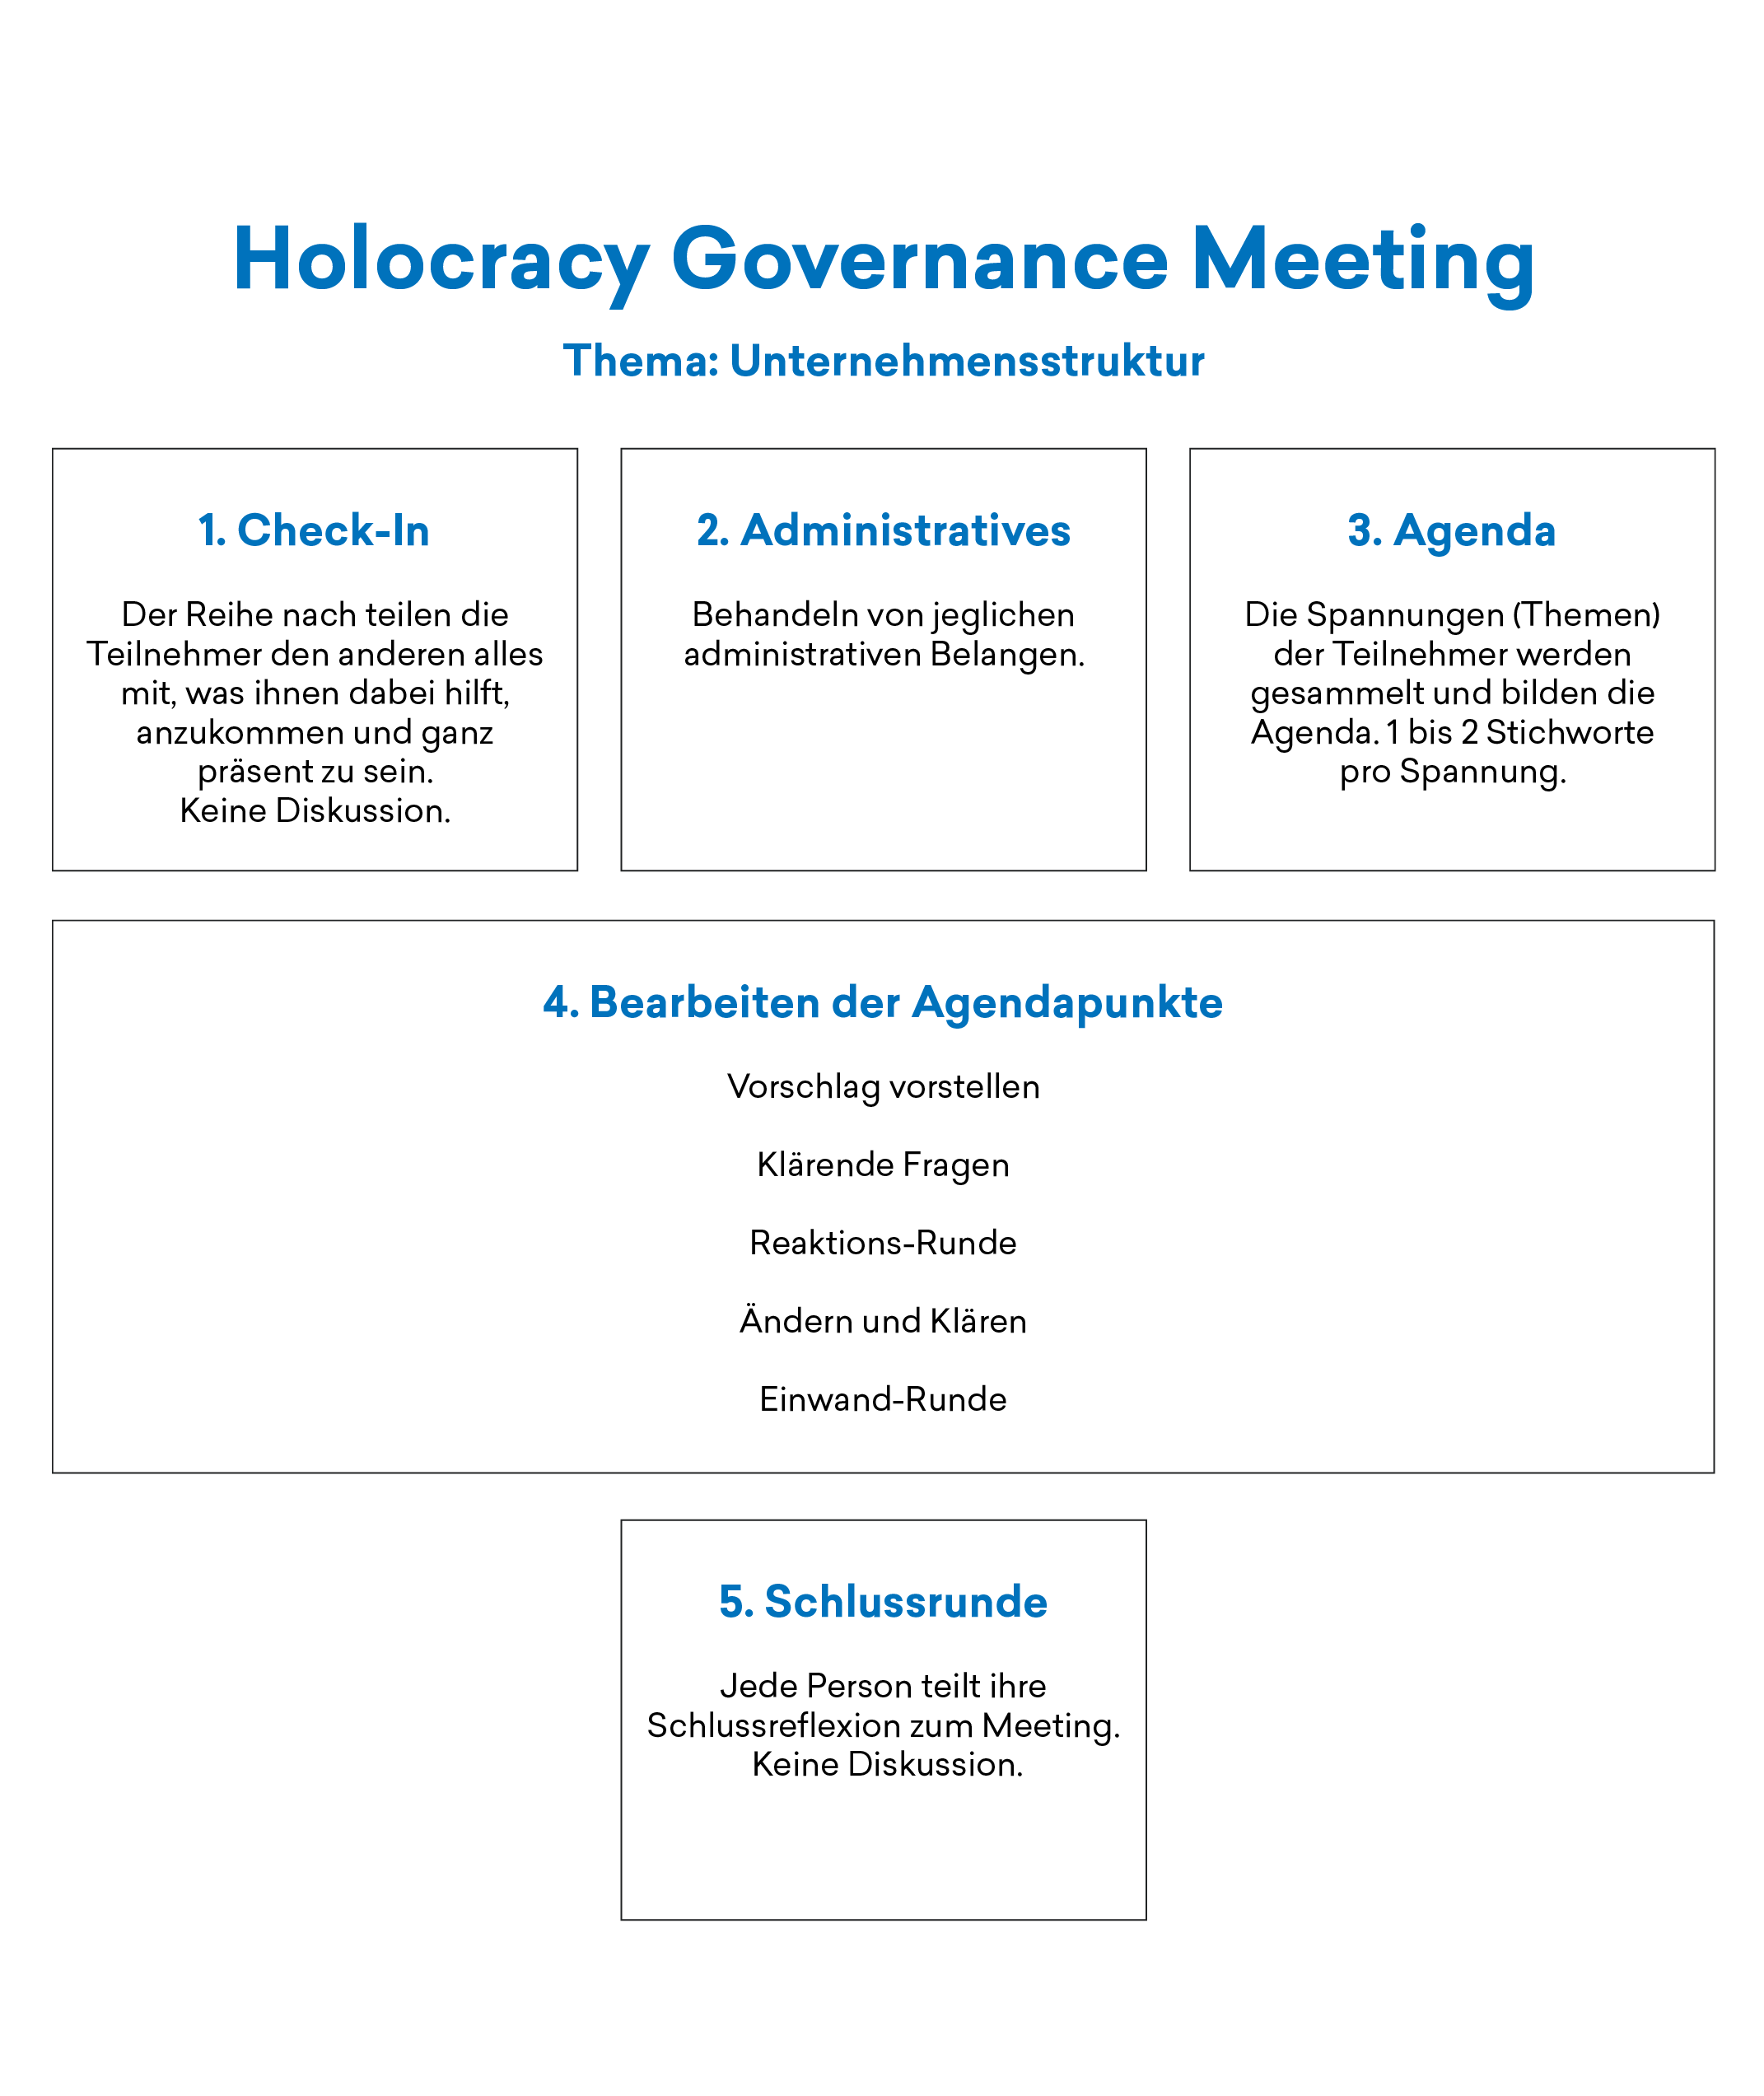 HOLACRACY GOVERNANCE MEETING